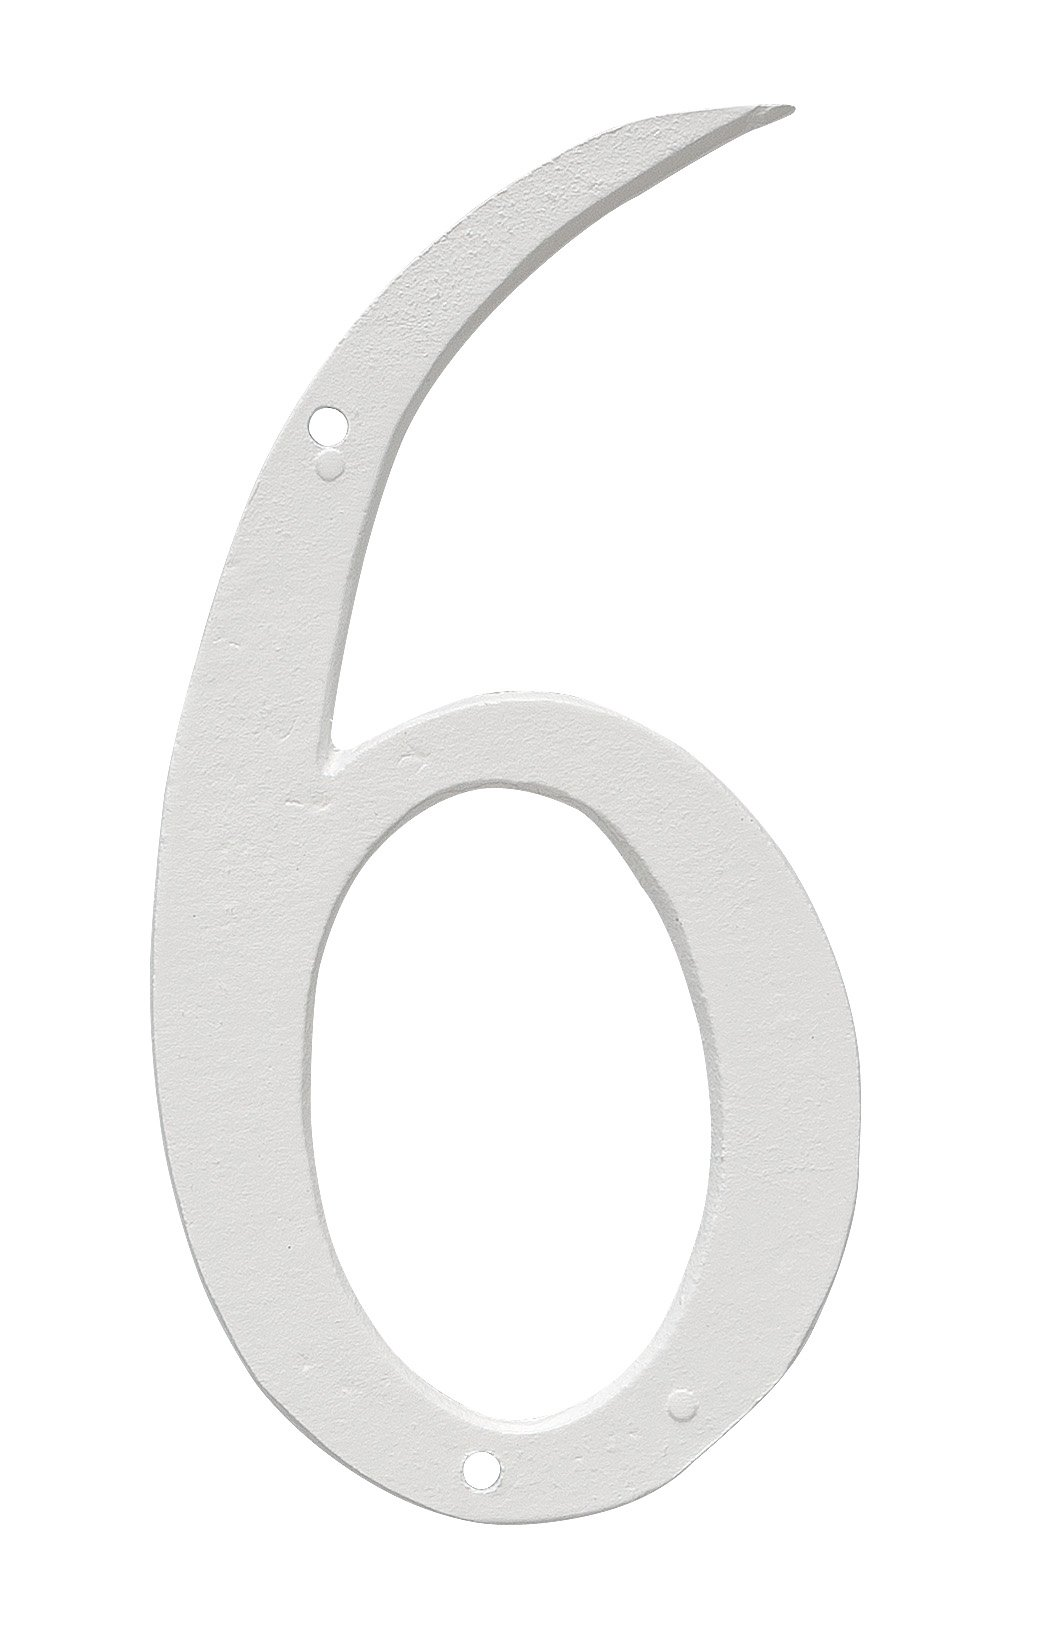 Montague Metal Products CSHN-4-6-W Aluminum House Number 6 Outdoor Plaque, Small, White